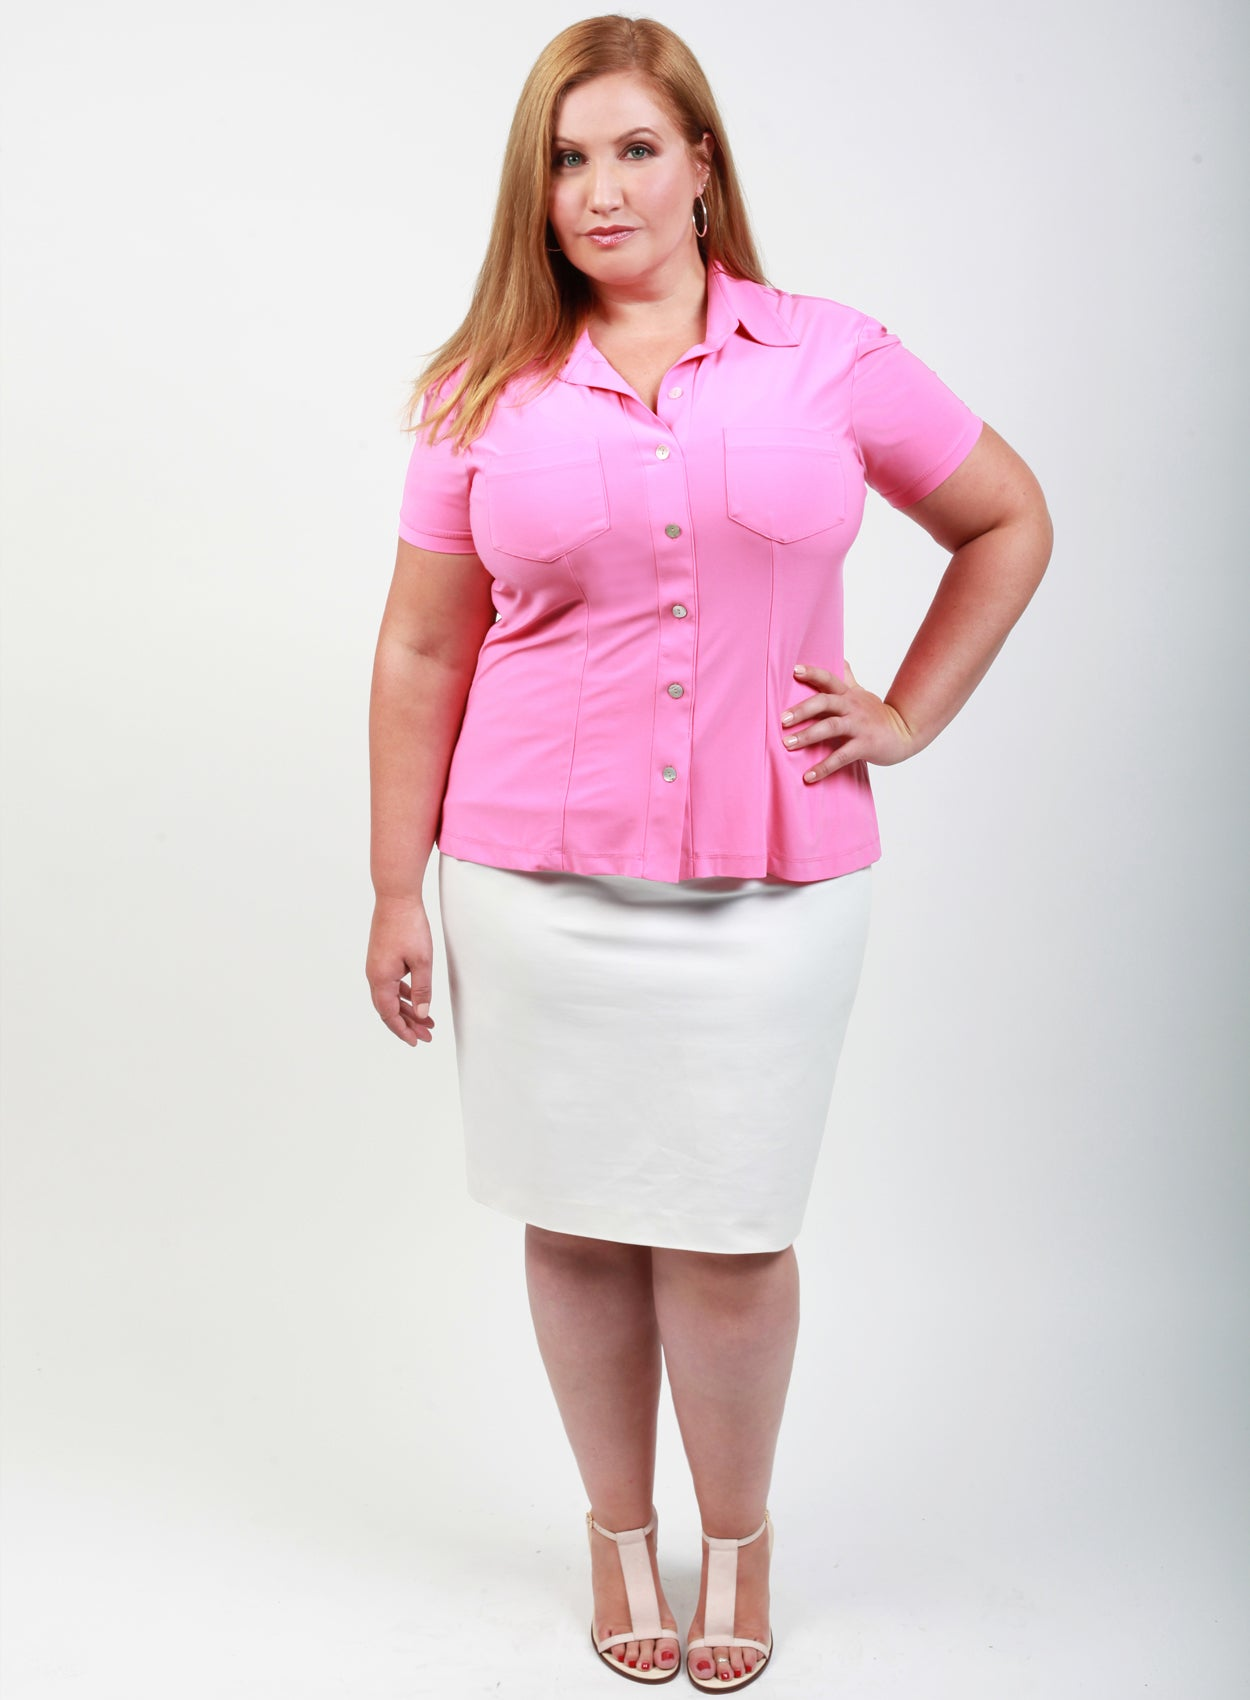 CURVY WOMENS PINK PLUS SIZE BUTTON FRONT SHIRT OXFORD STYLE WITH COLLAR AND SHORT SLEEVES